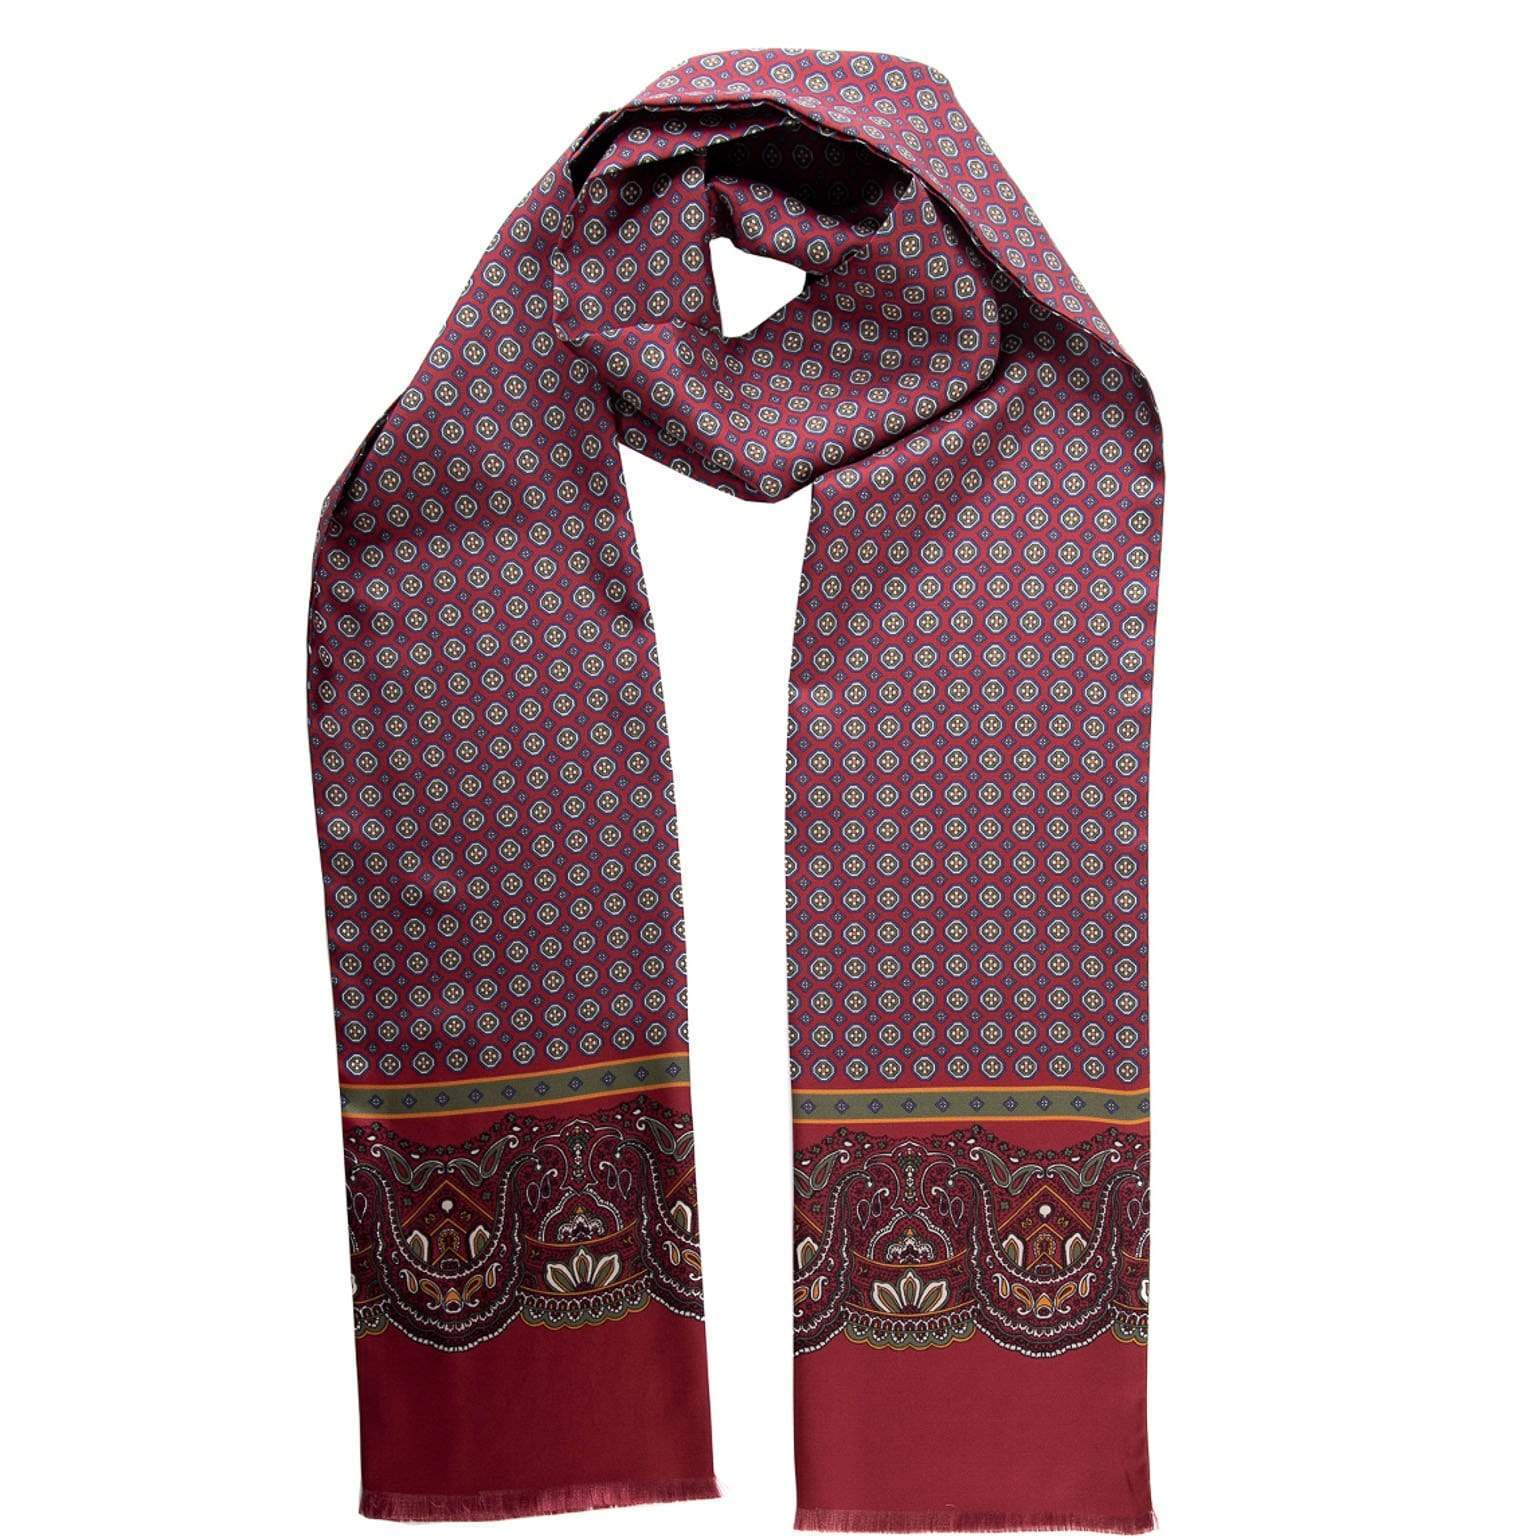 Mens Silk Dress Scarf - Burgundy 100% Made in Italy